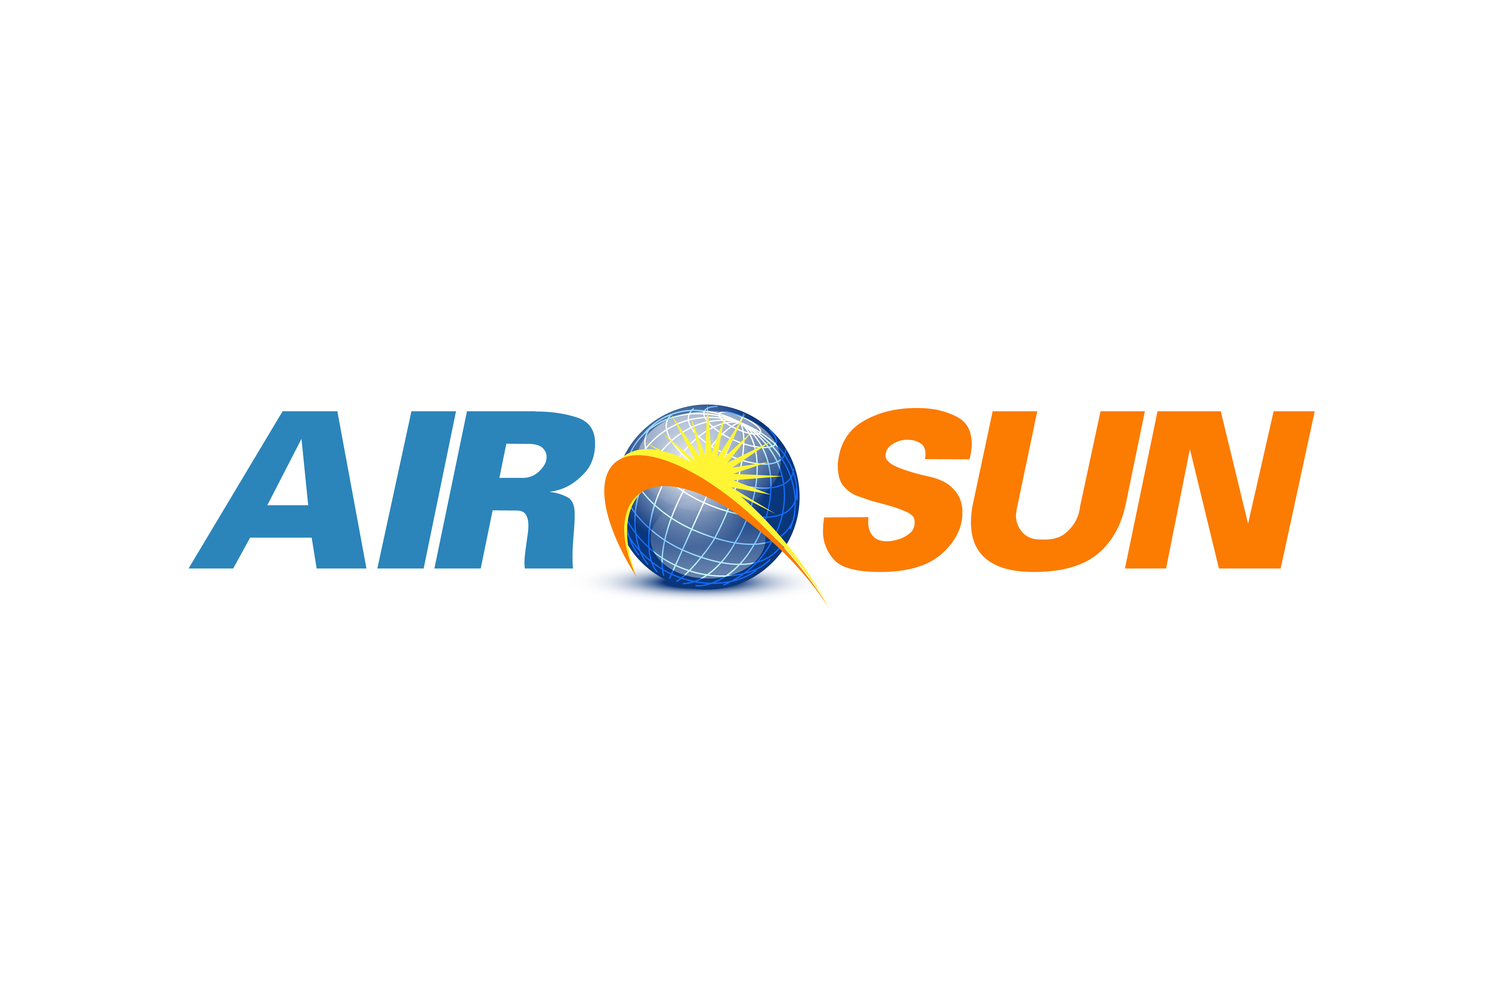 AIR SUN SOLAR: Clean. Simple. Yours.